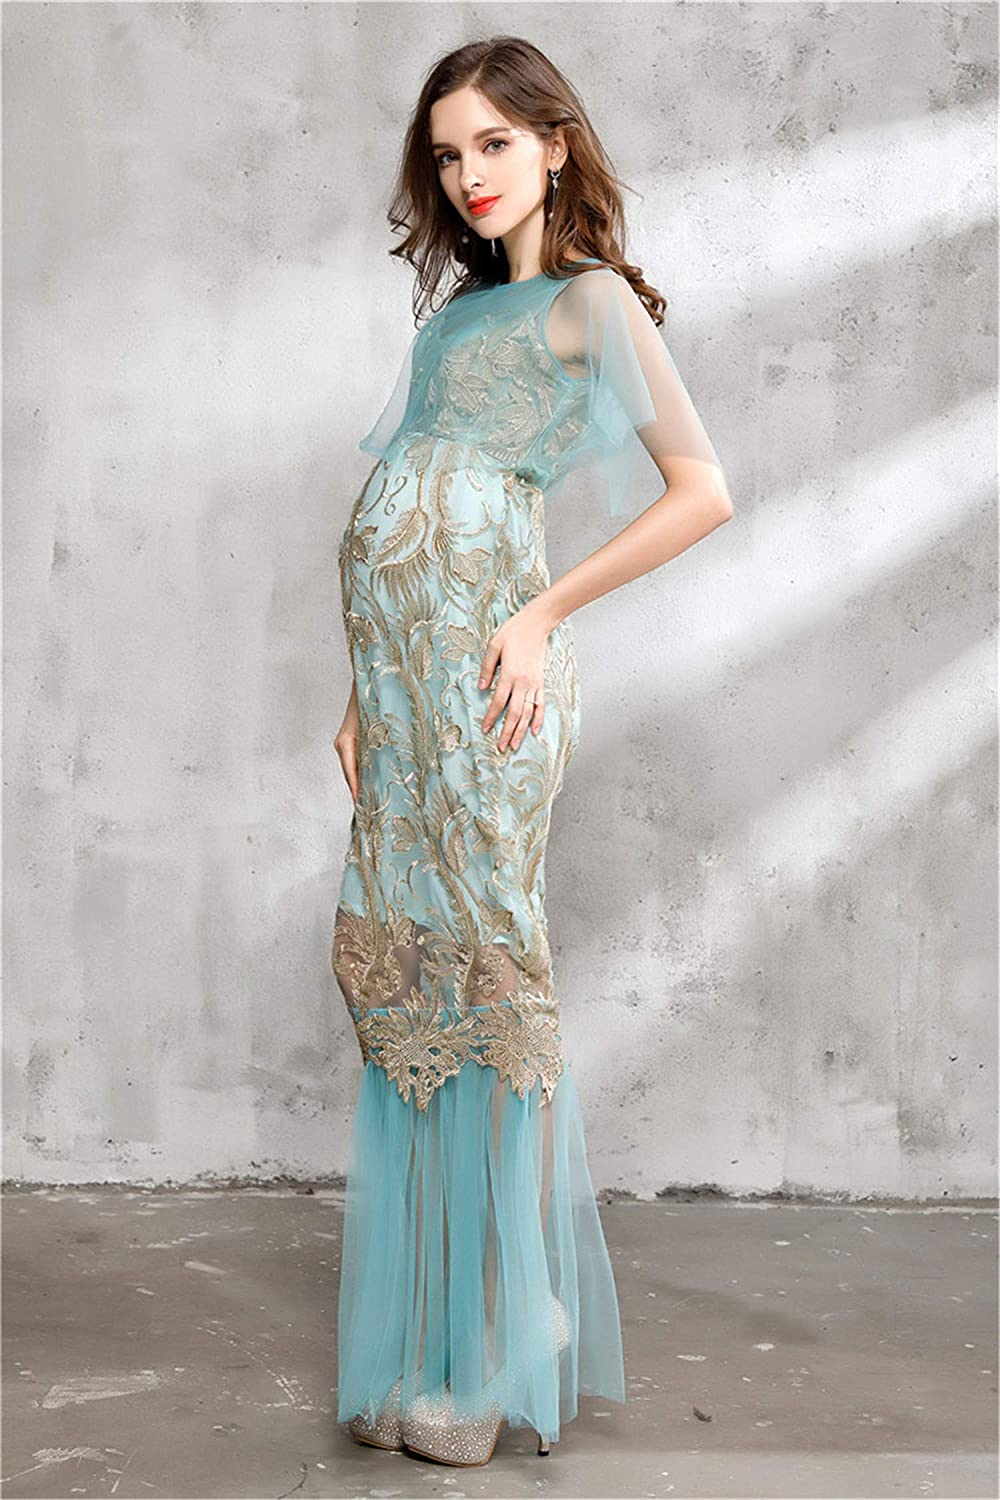 Maternity Skirt Mesh Embroidery Photography Props Wrapped Full Body Dress Female Special Occasions Lady Pregnancy